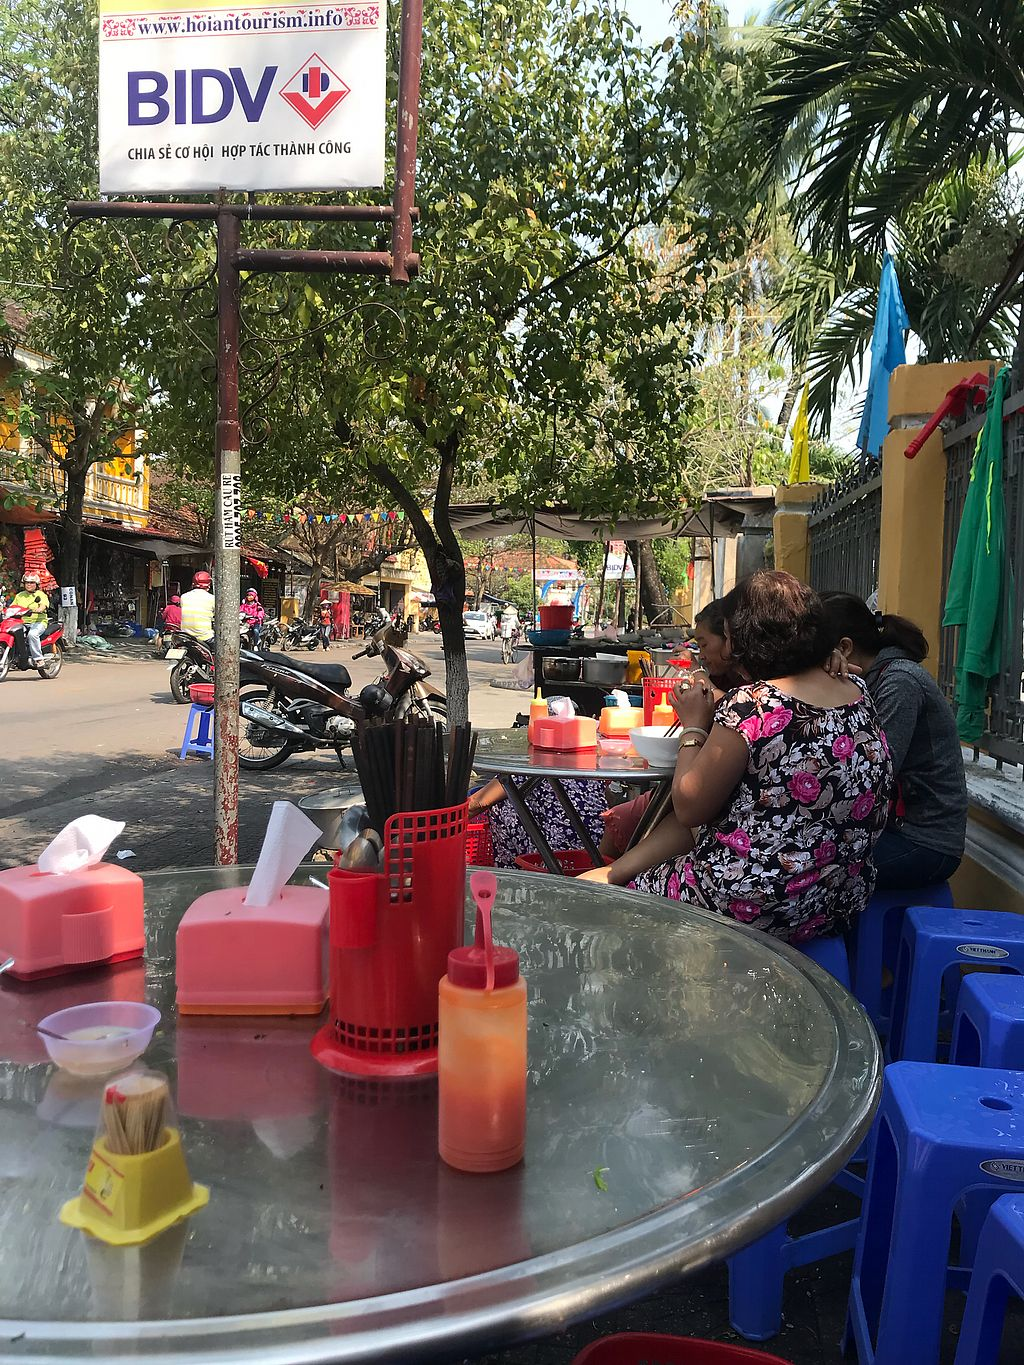 """Photo of Hoi Banh My Chay - Food Stall  by <a href=""""/members/profile/jillianwu"""">jillianwu</a> <br/>Pho day <br/> March 2, 2018  - <a href='/contact/abuse/image/81098/365589'>Report</a>"""